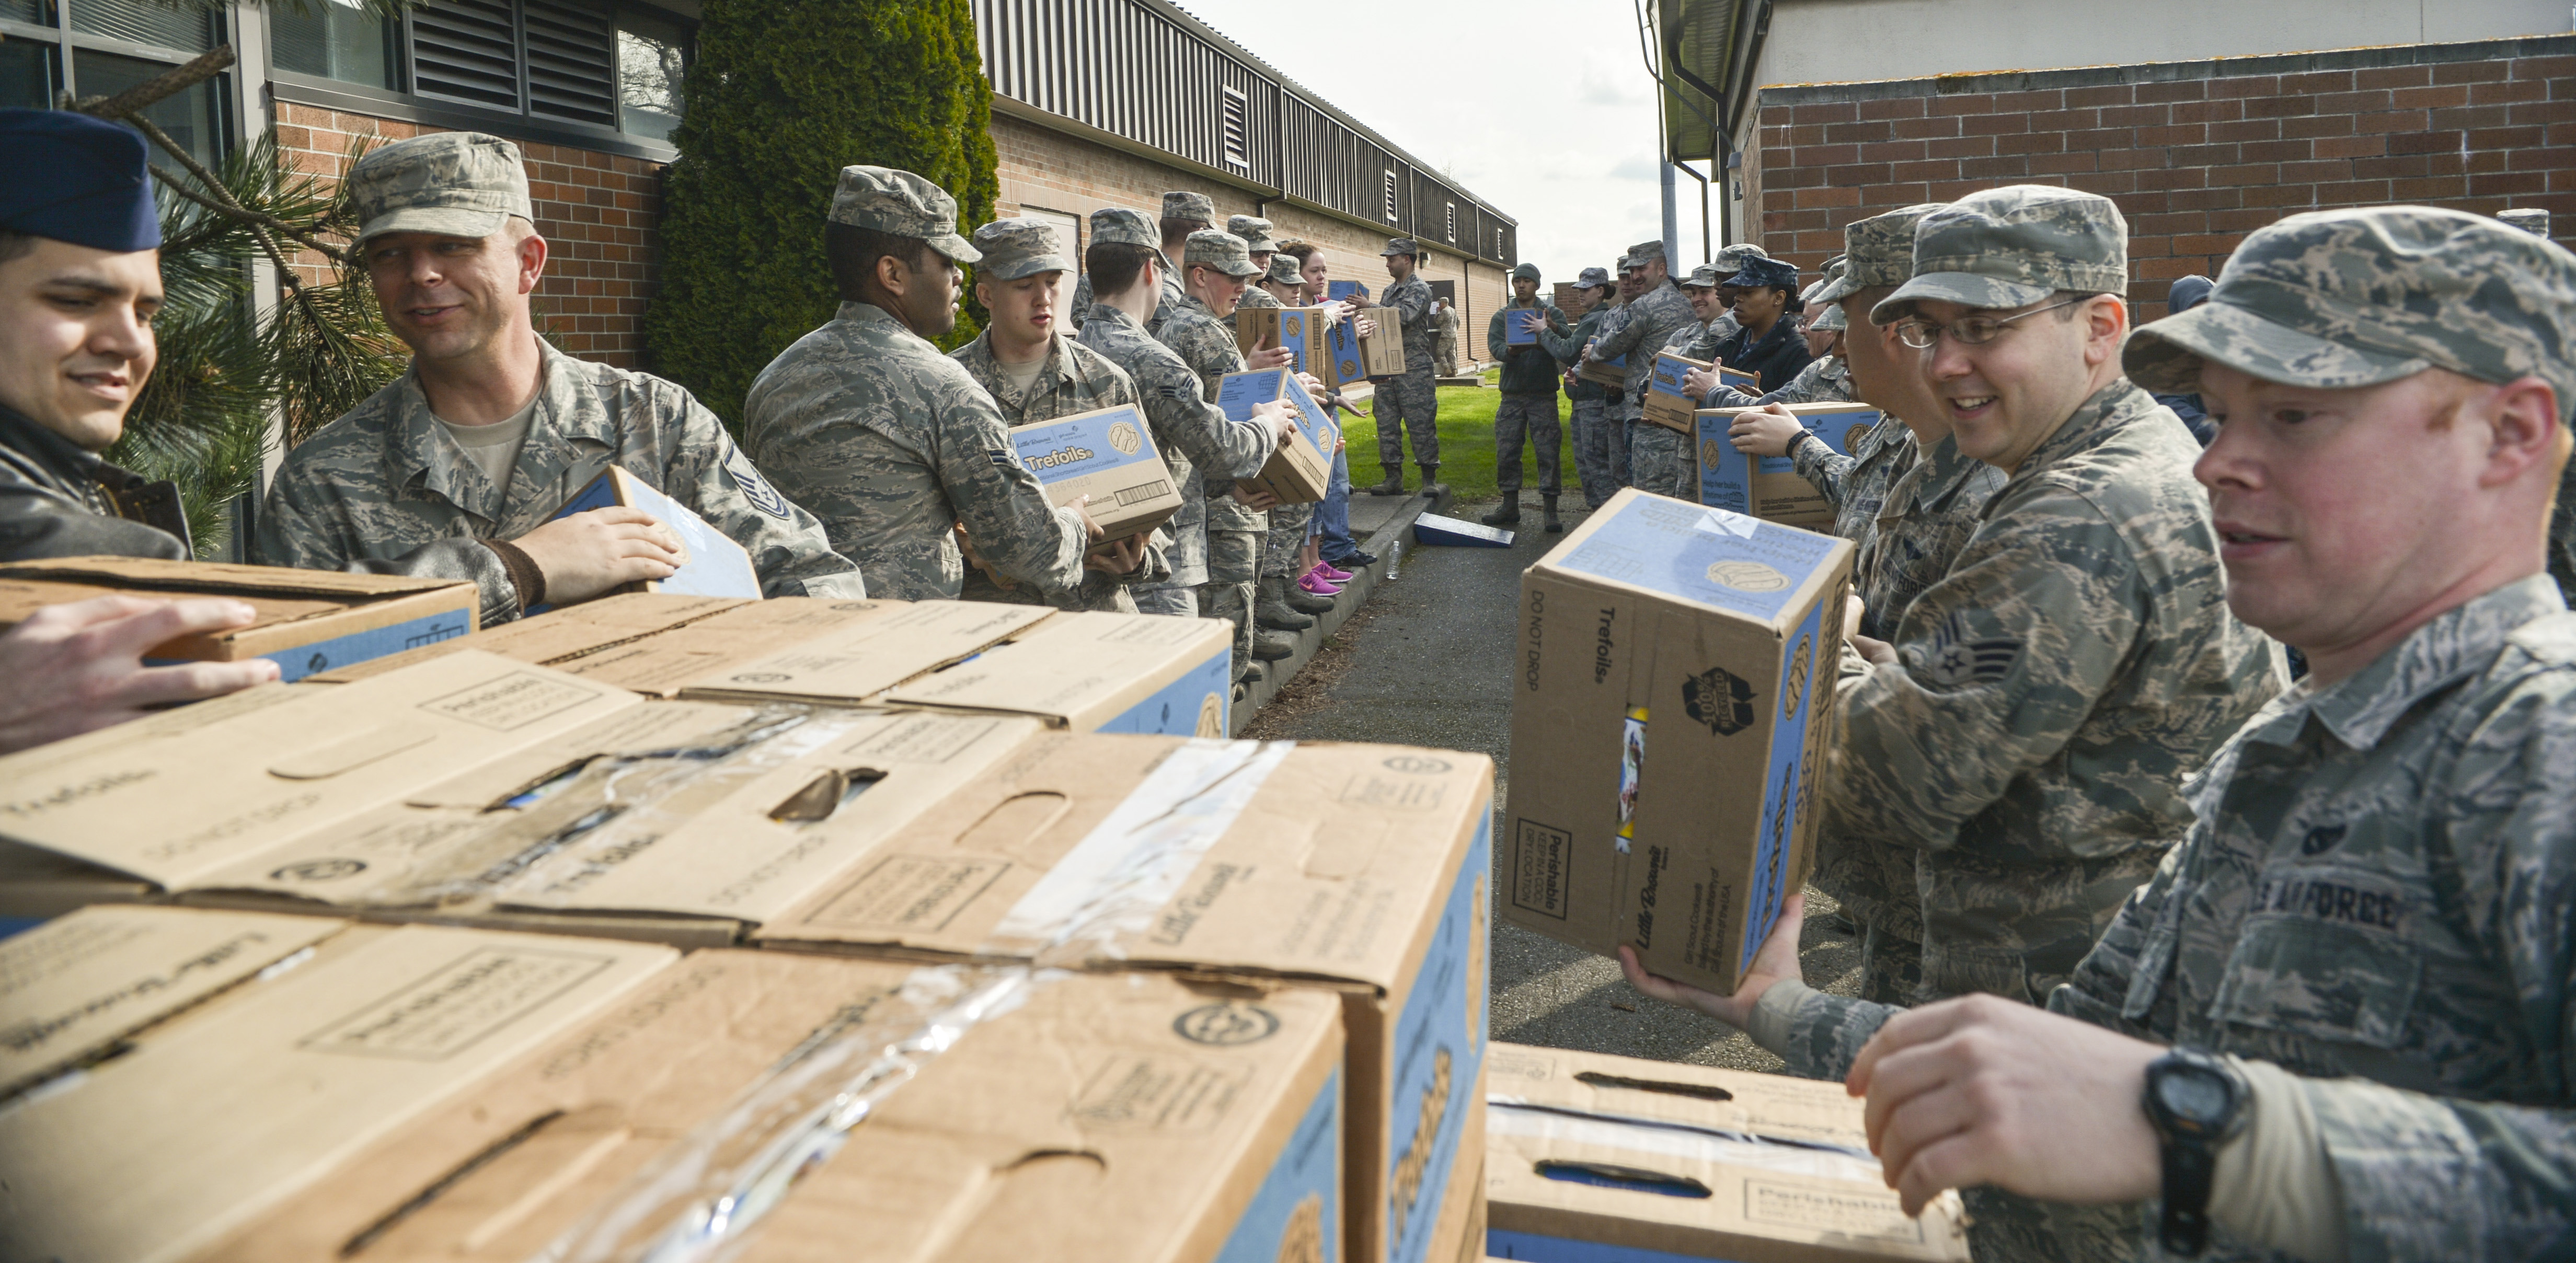 how to make the perfect care package for troops · united service